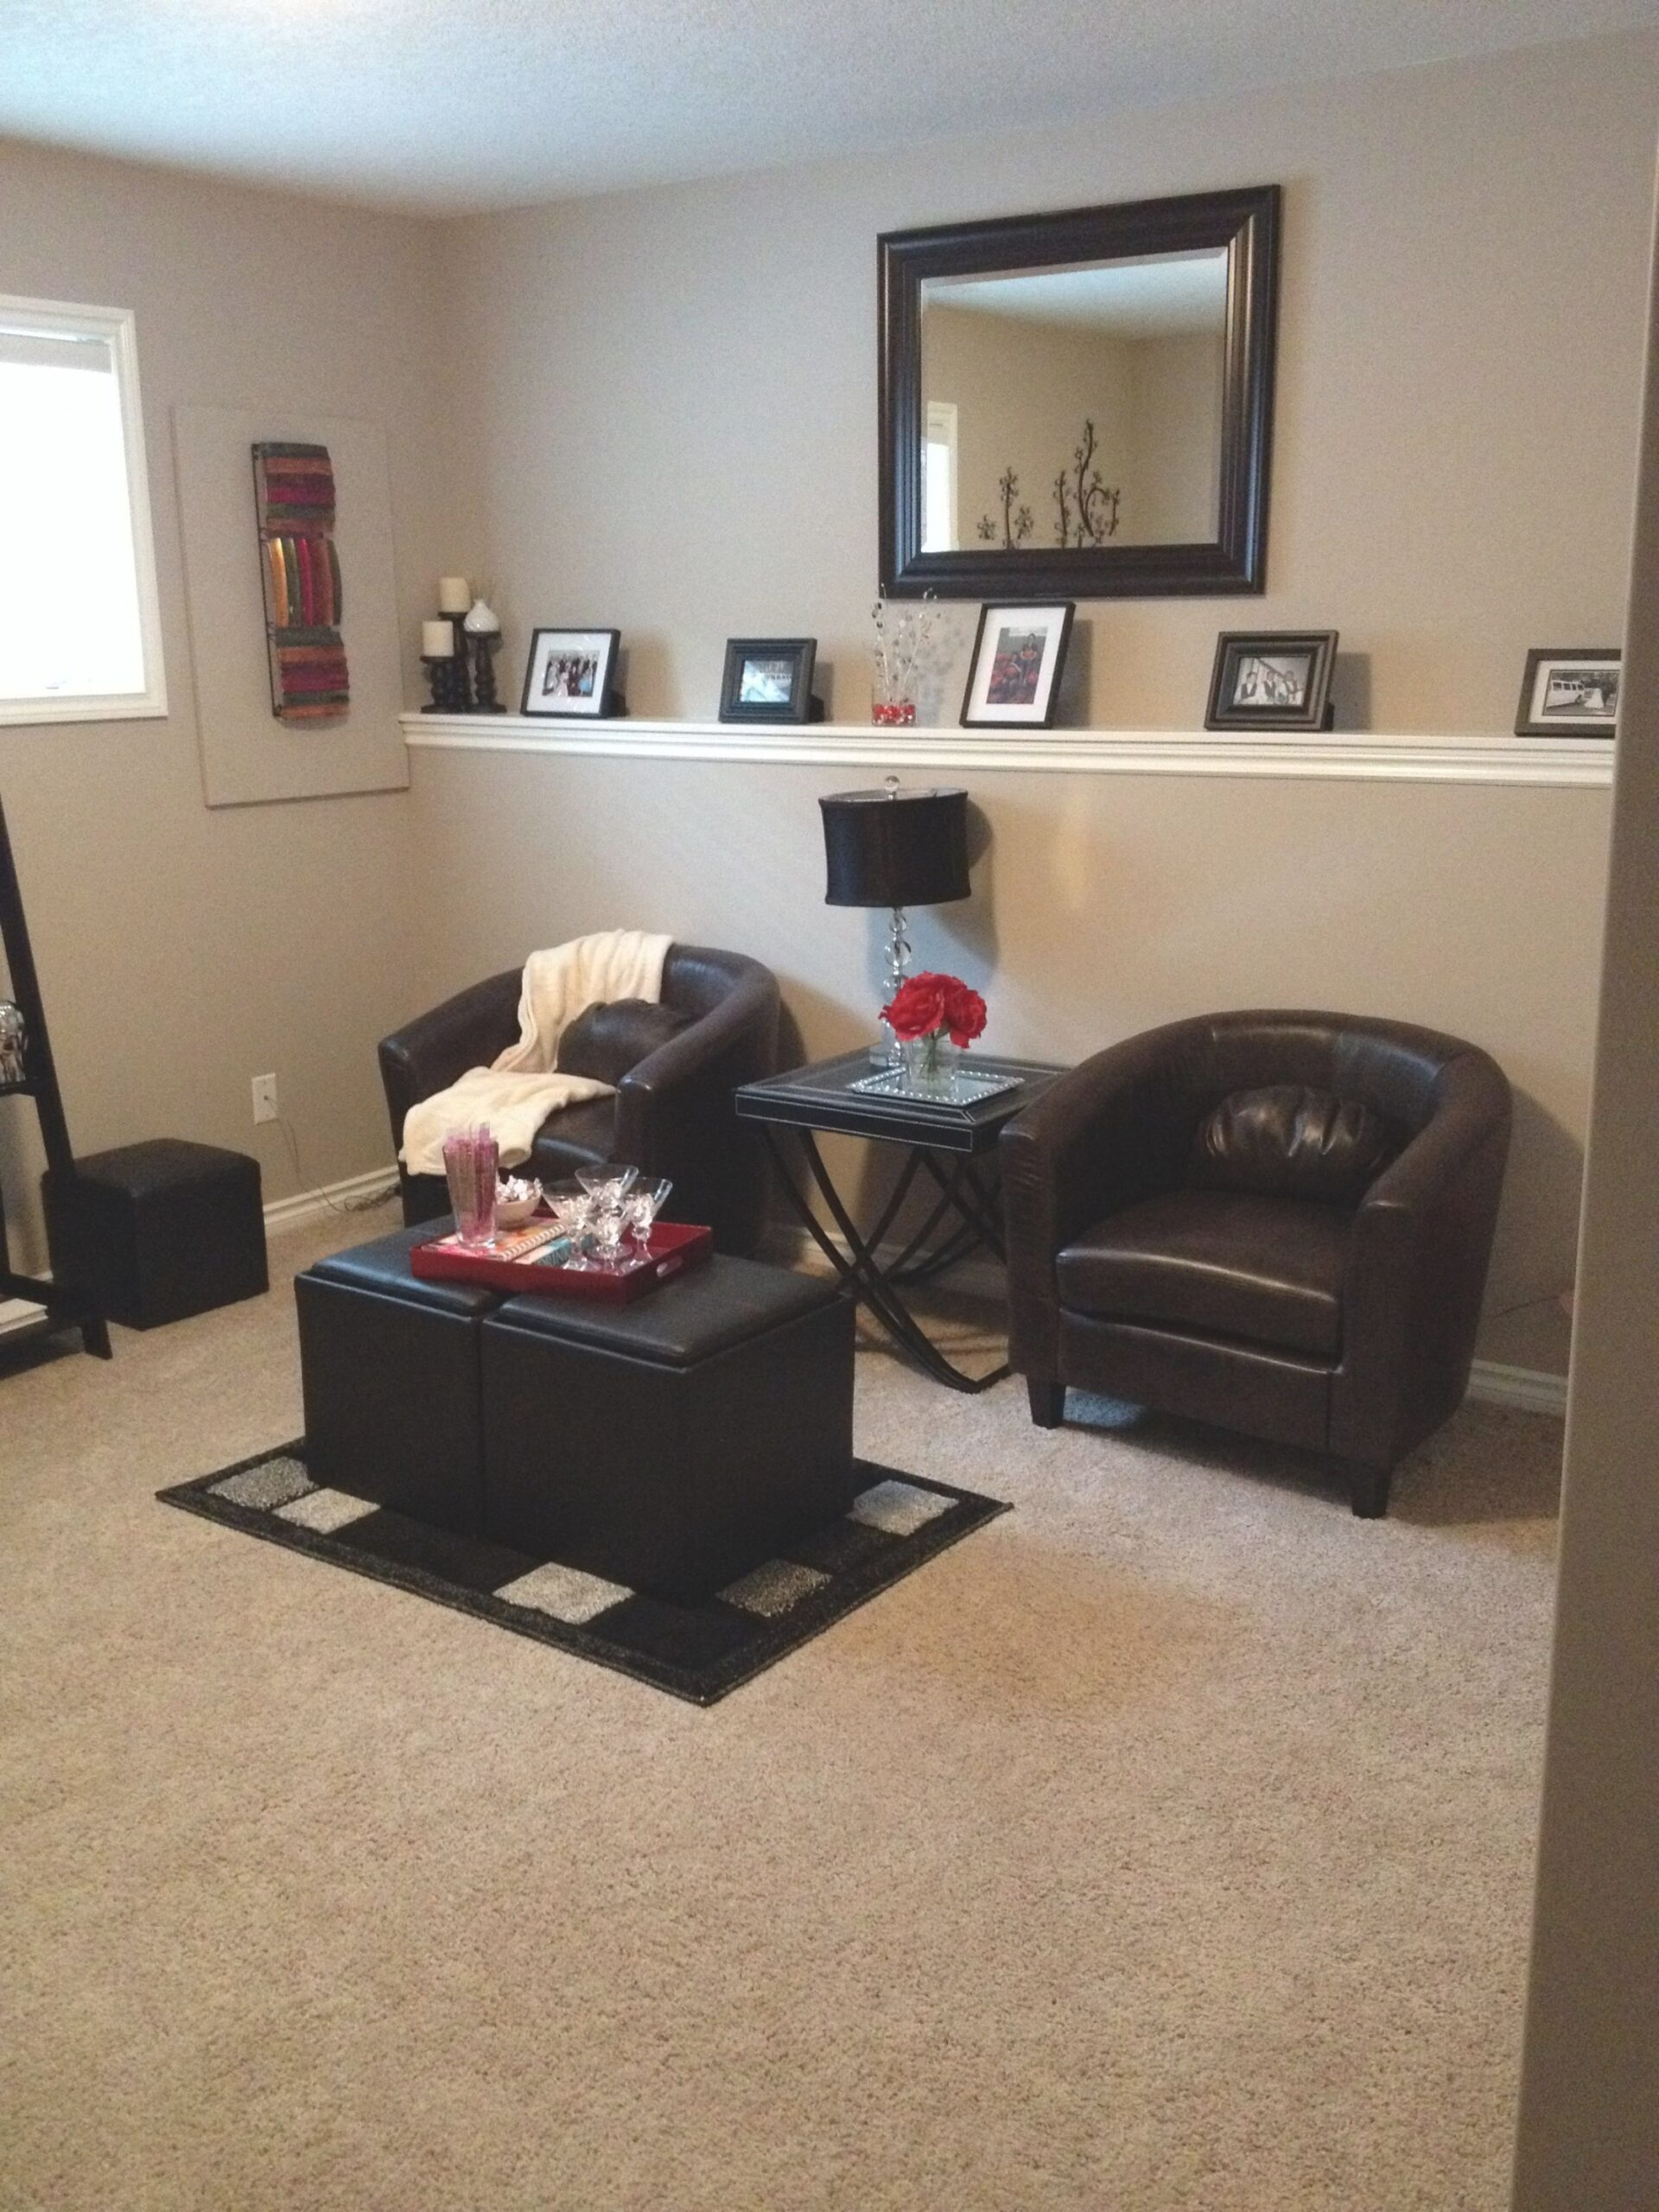 Turn Living Room Into Bedroom Awesome Bedroom Turned Into pertaining to Turning Living Room Into Bedroom